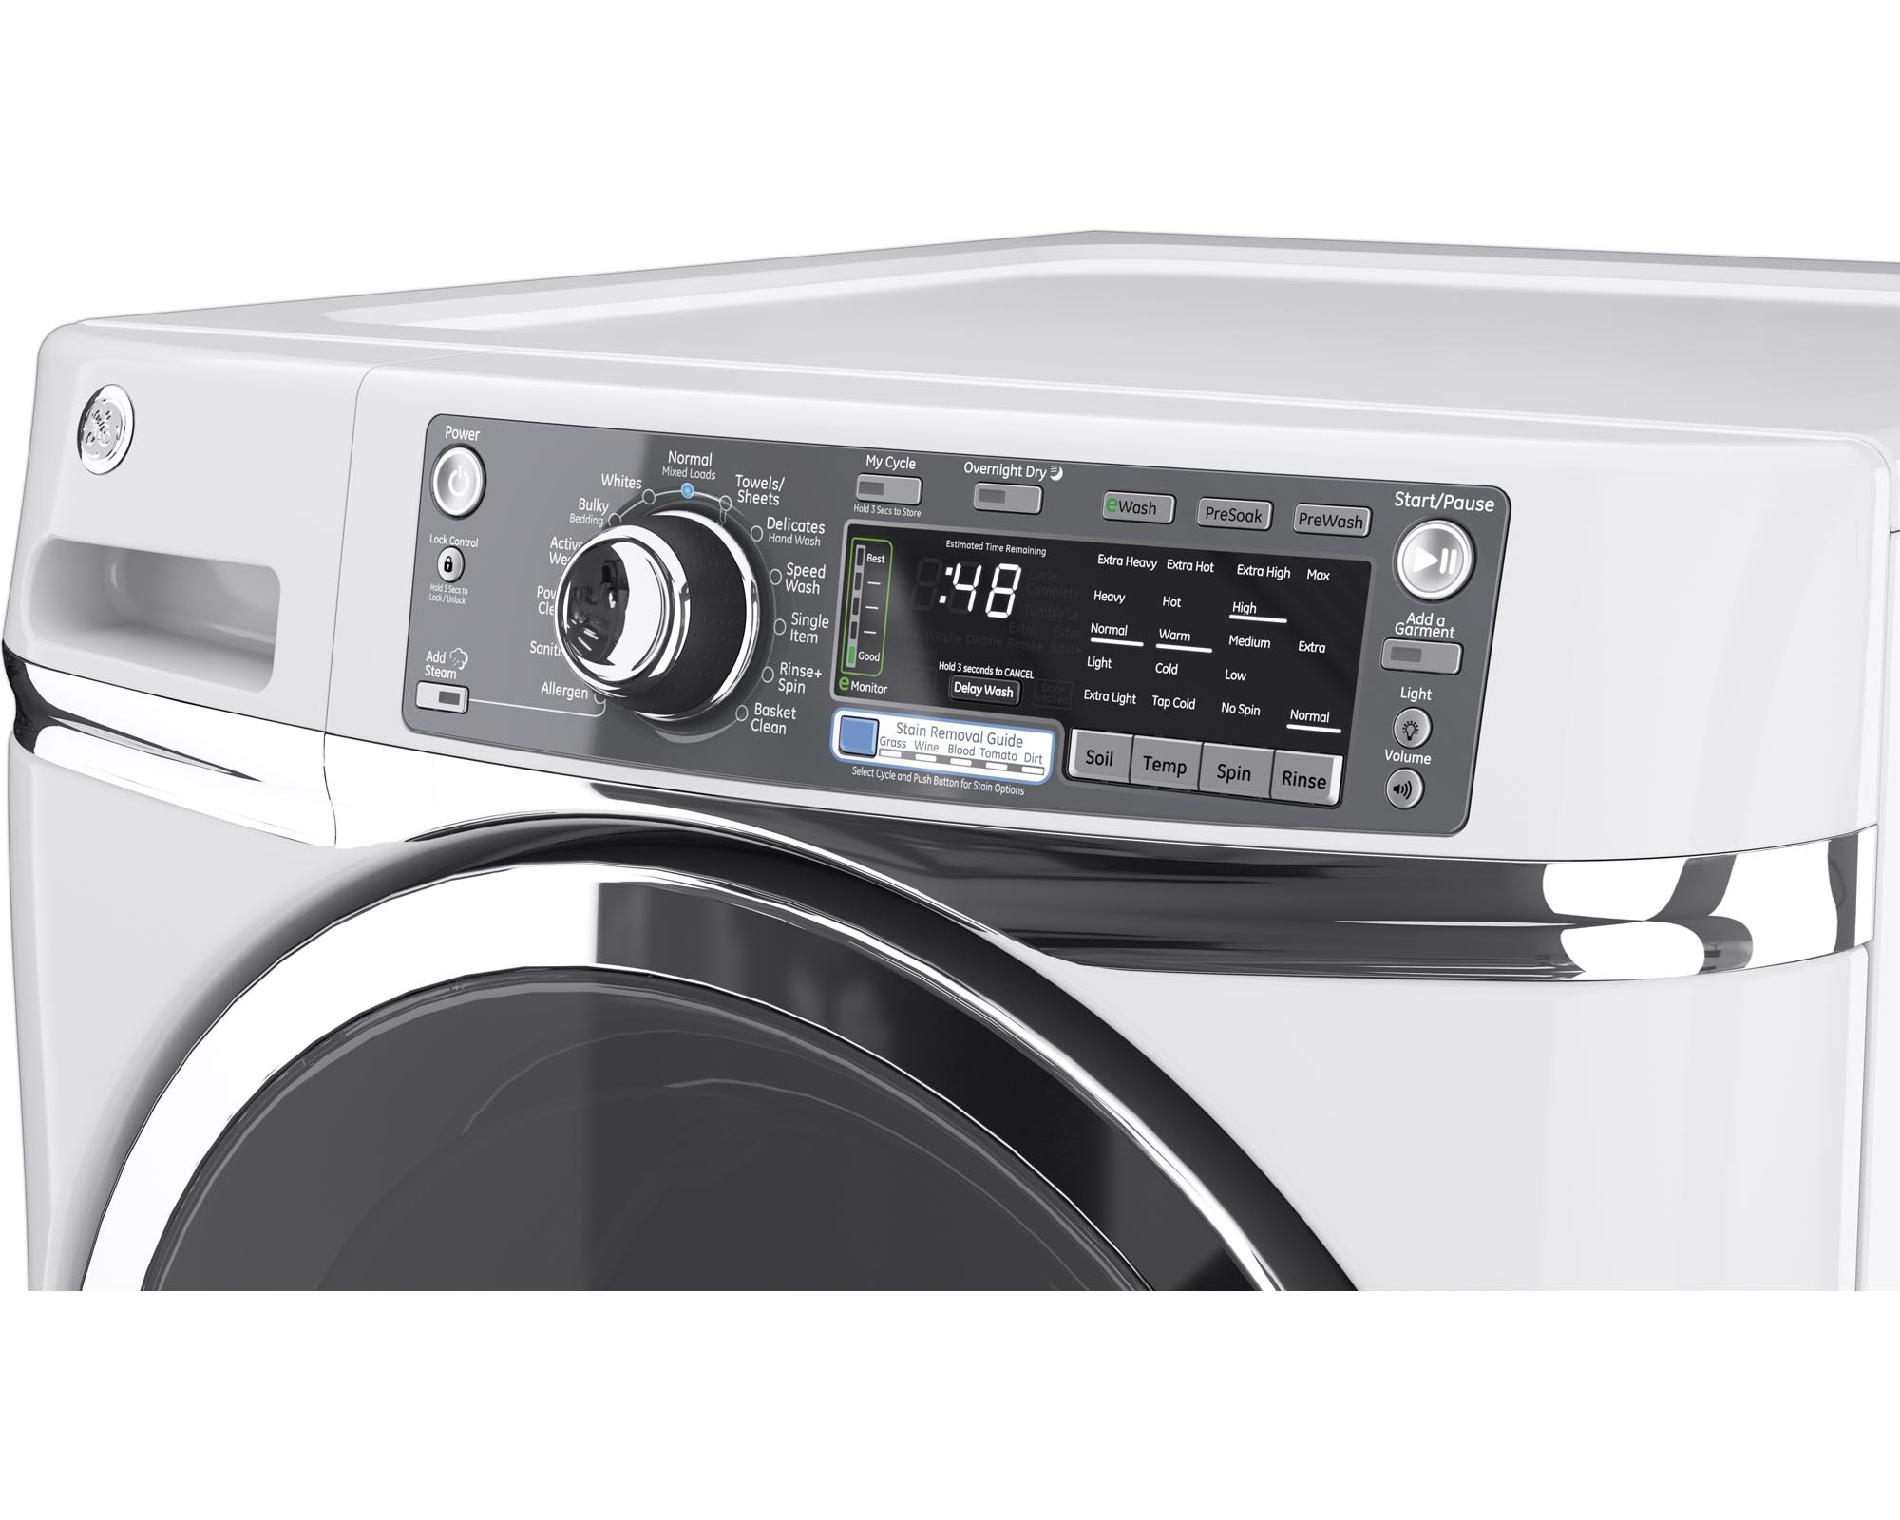 GE 4.8 cu. ft. RightHeight™ Design Front-Load Washer - White